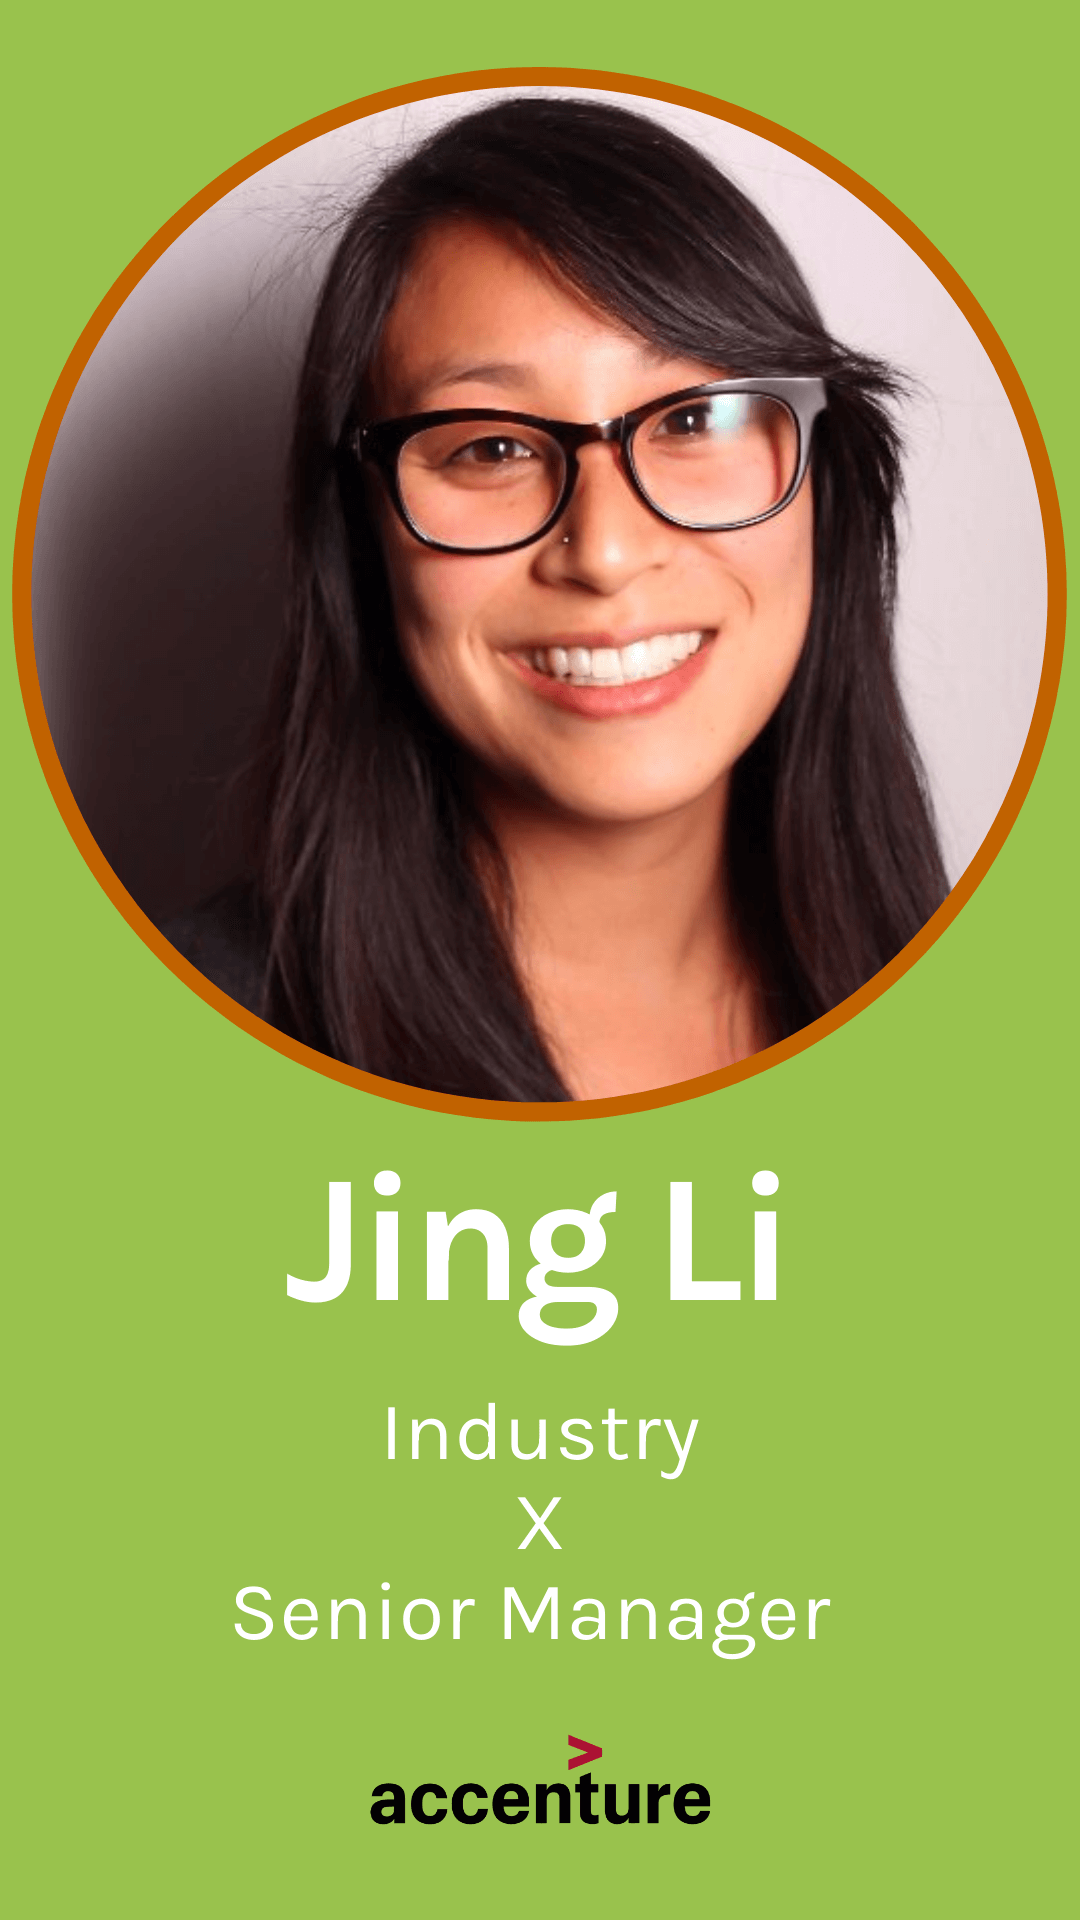 Jing Li, Innovation & Growth Strategy Lead, Accenture's North America Technology Business